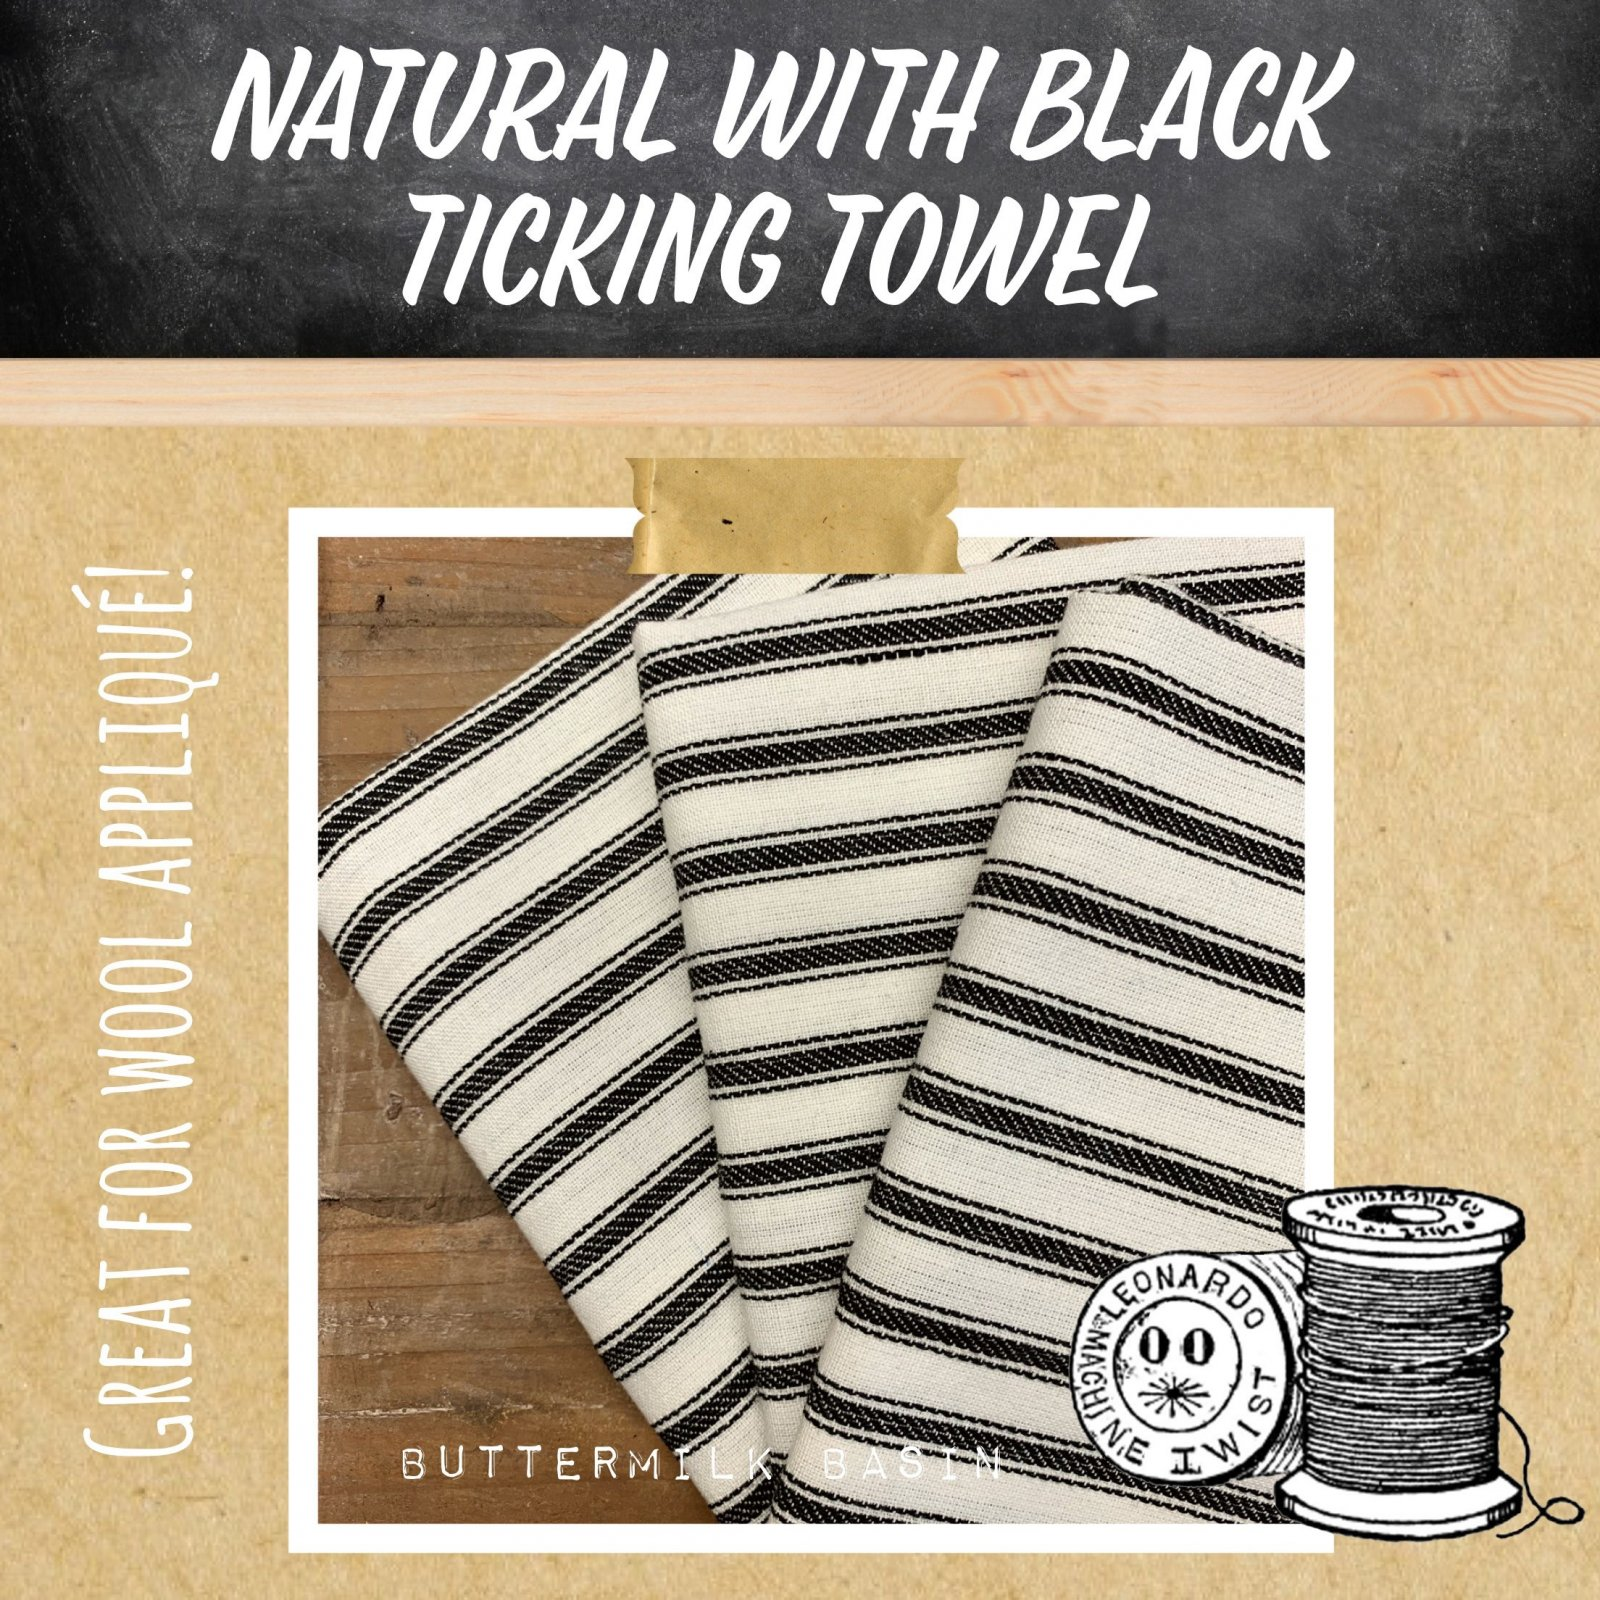 Natural with Black Ticking Towel